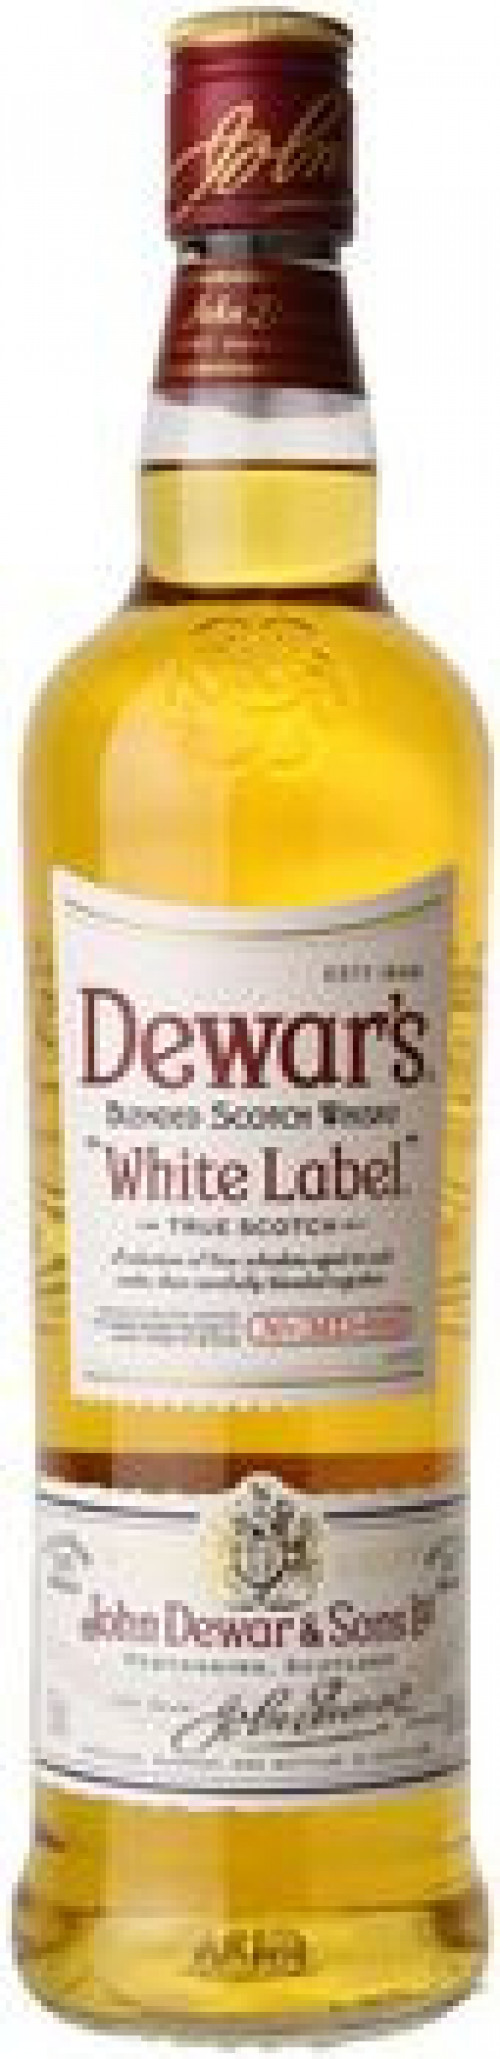 Dewar's White Label Blended Scotch 1L